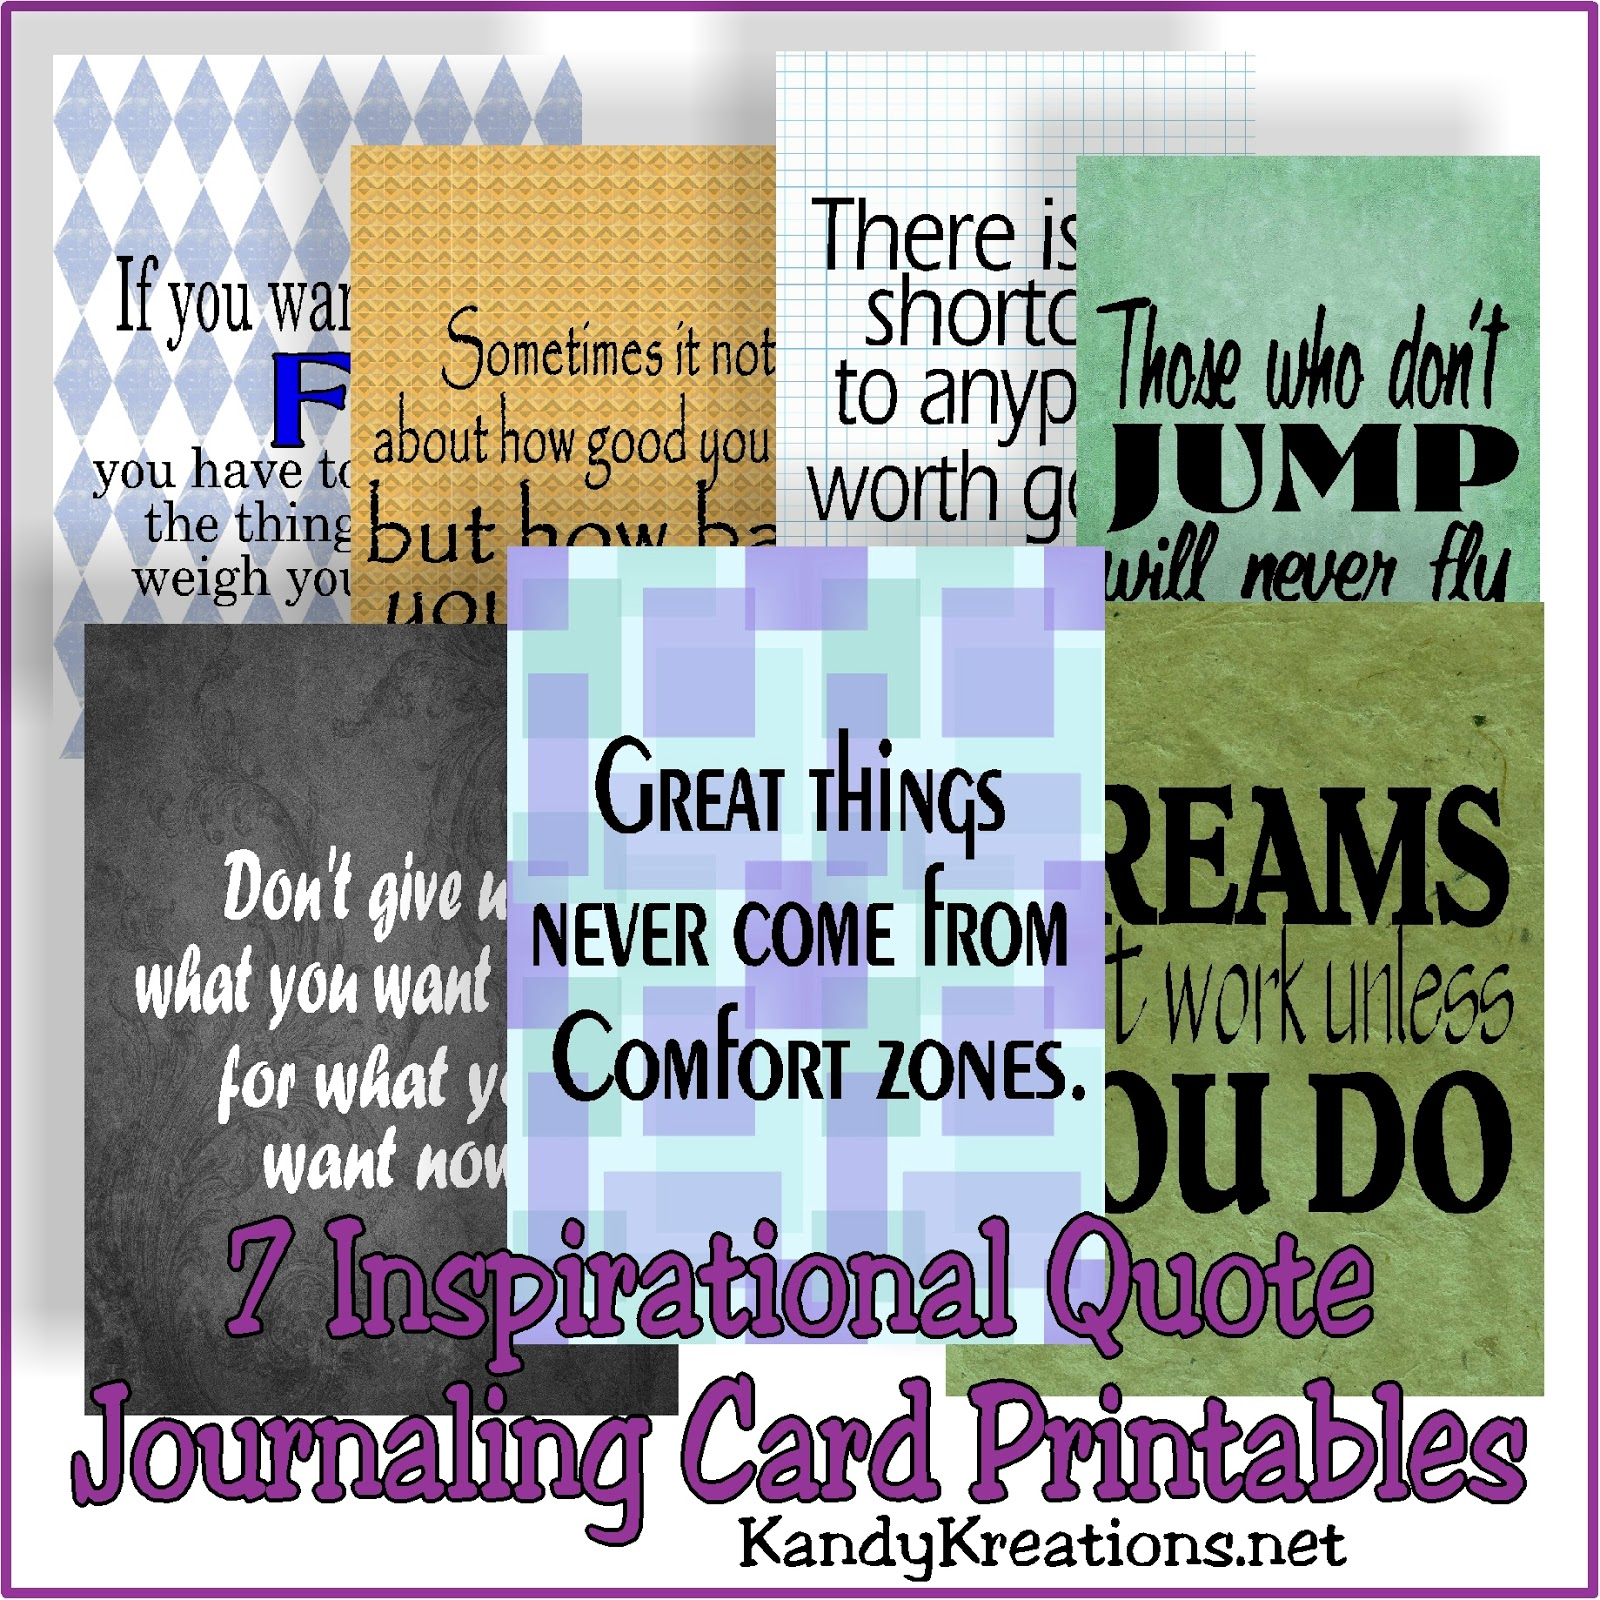 7 inspirational quote journaling card free printables